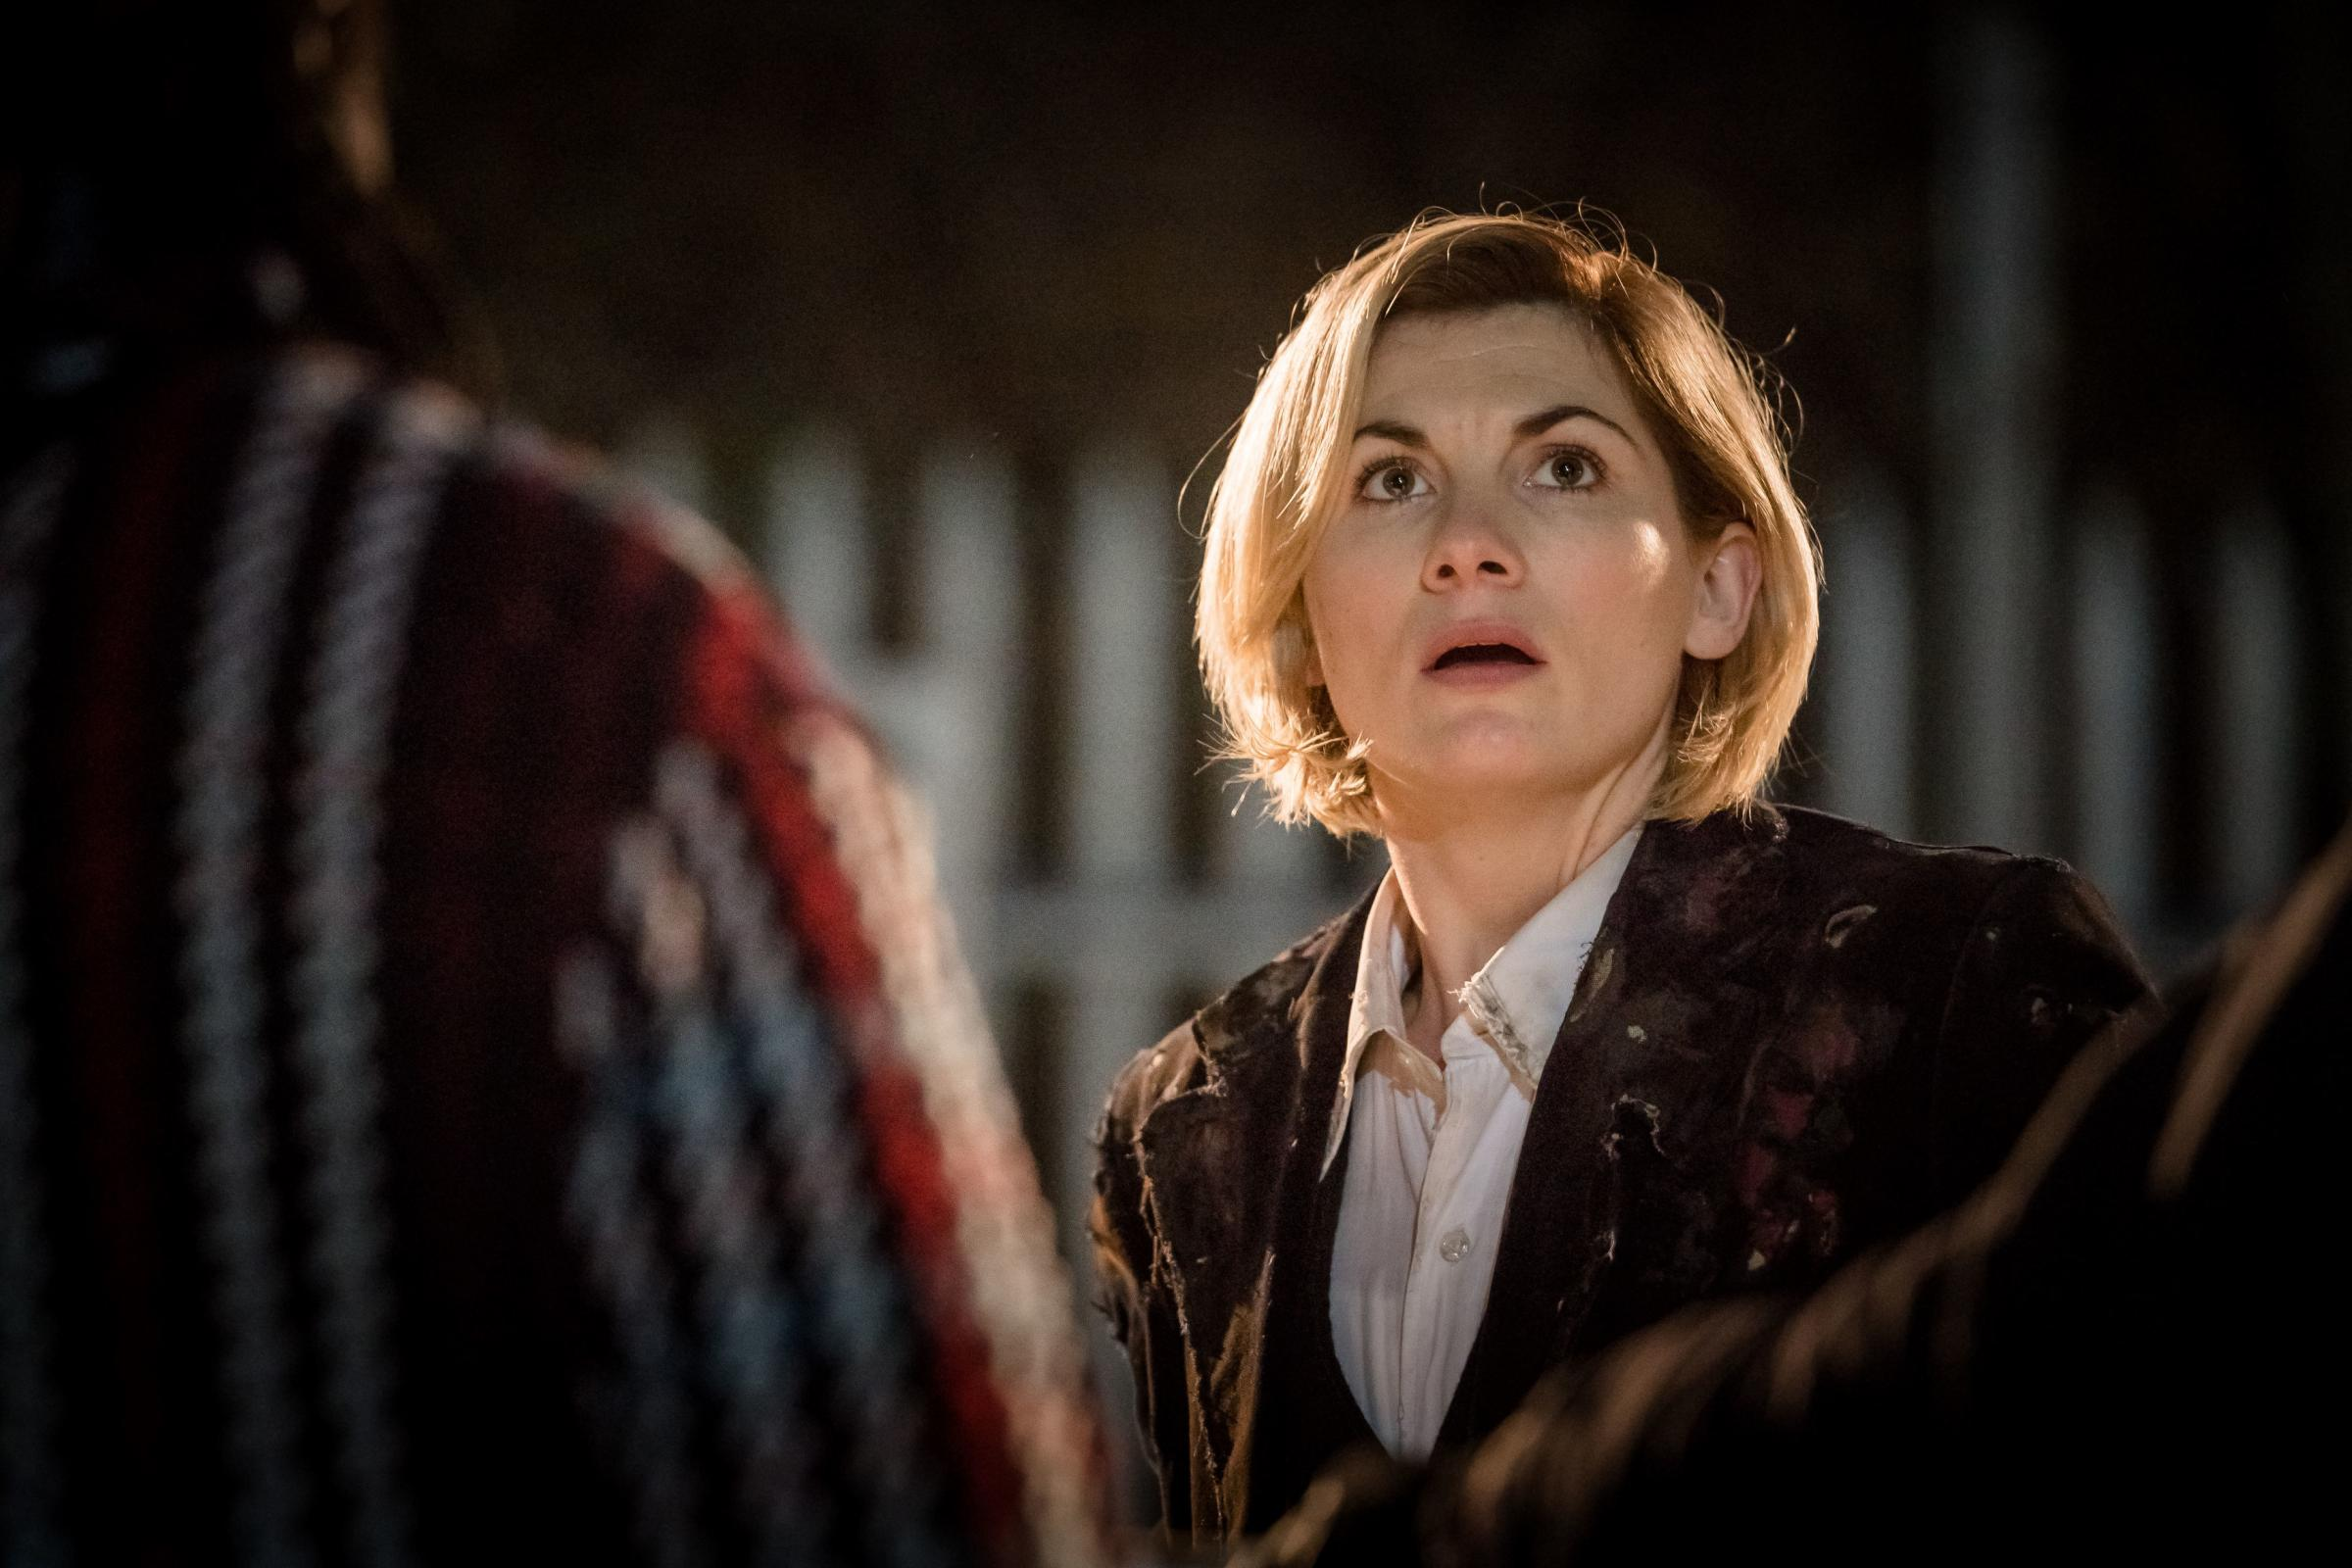 Jodie Whittaker is 'The Doctor', say thrilled fans of sci-fi show